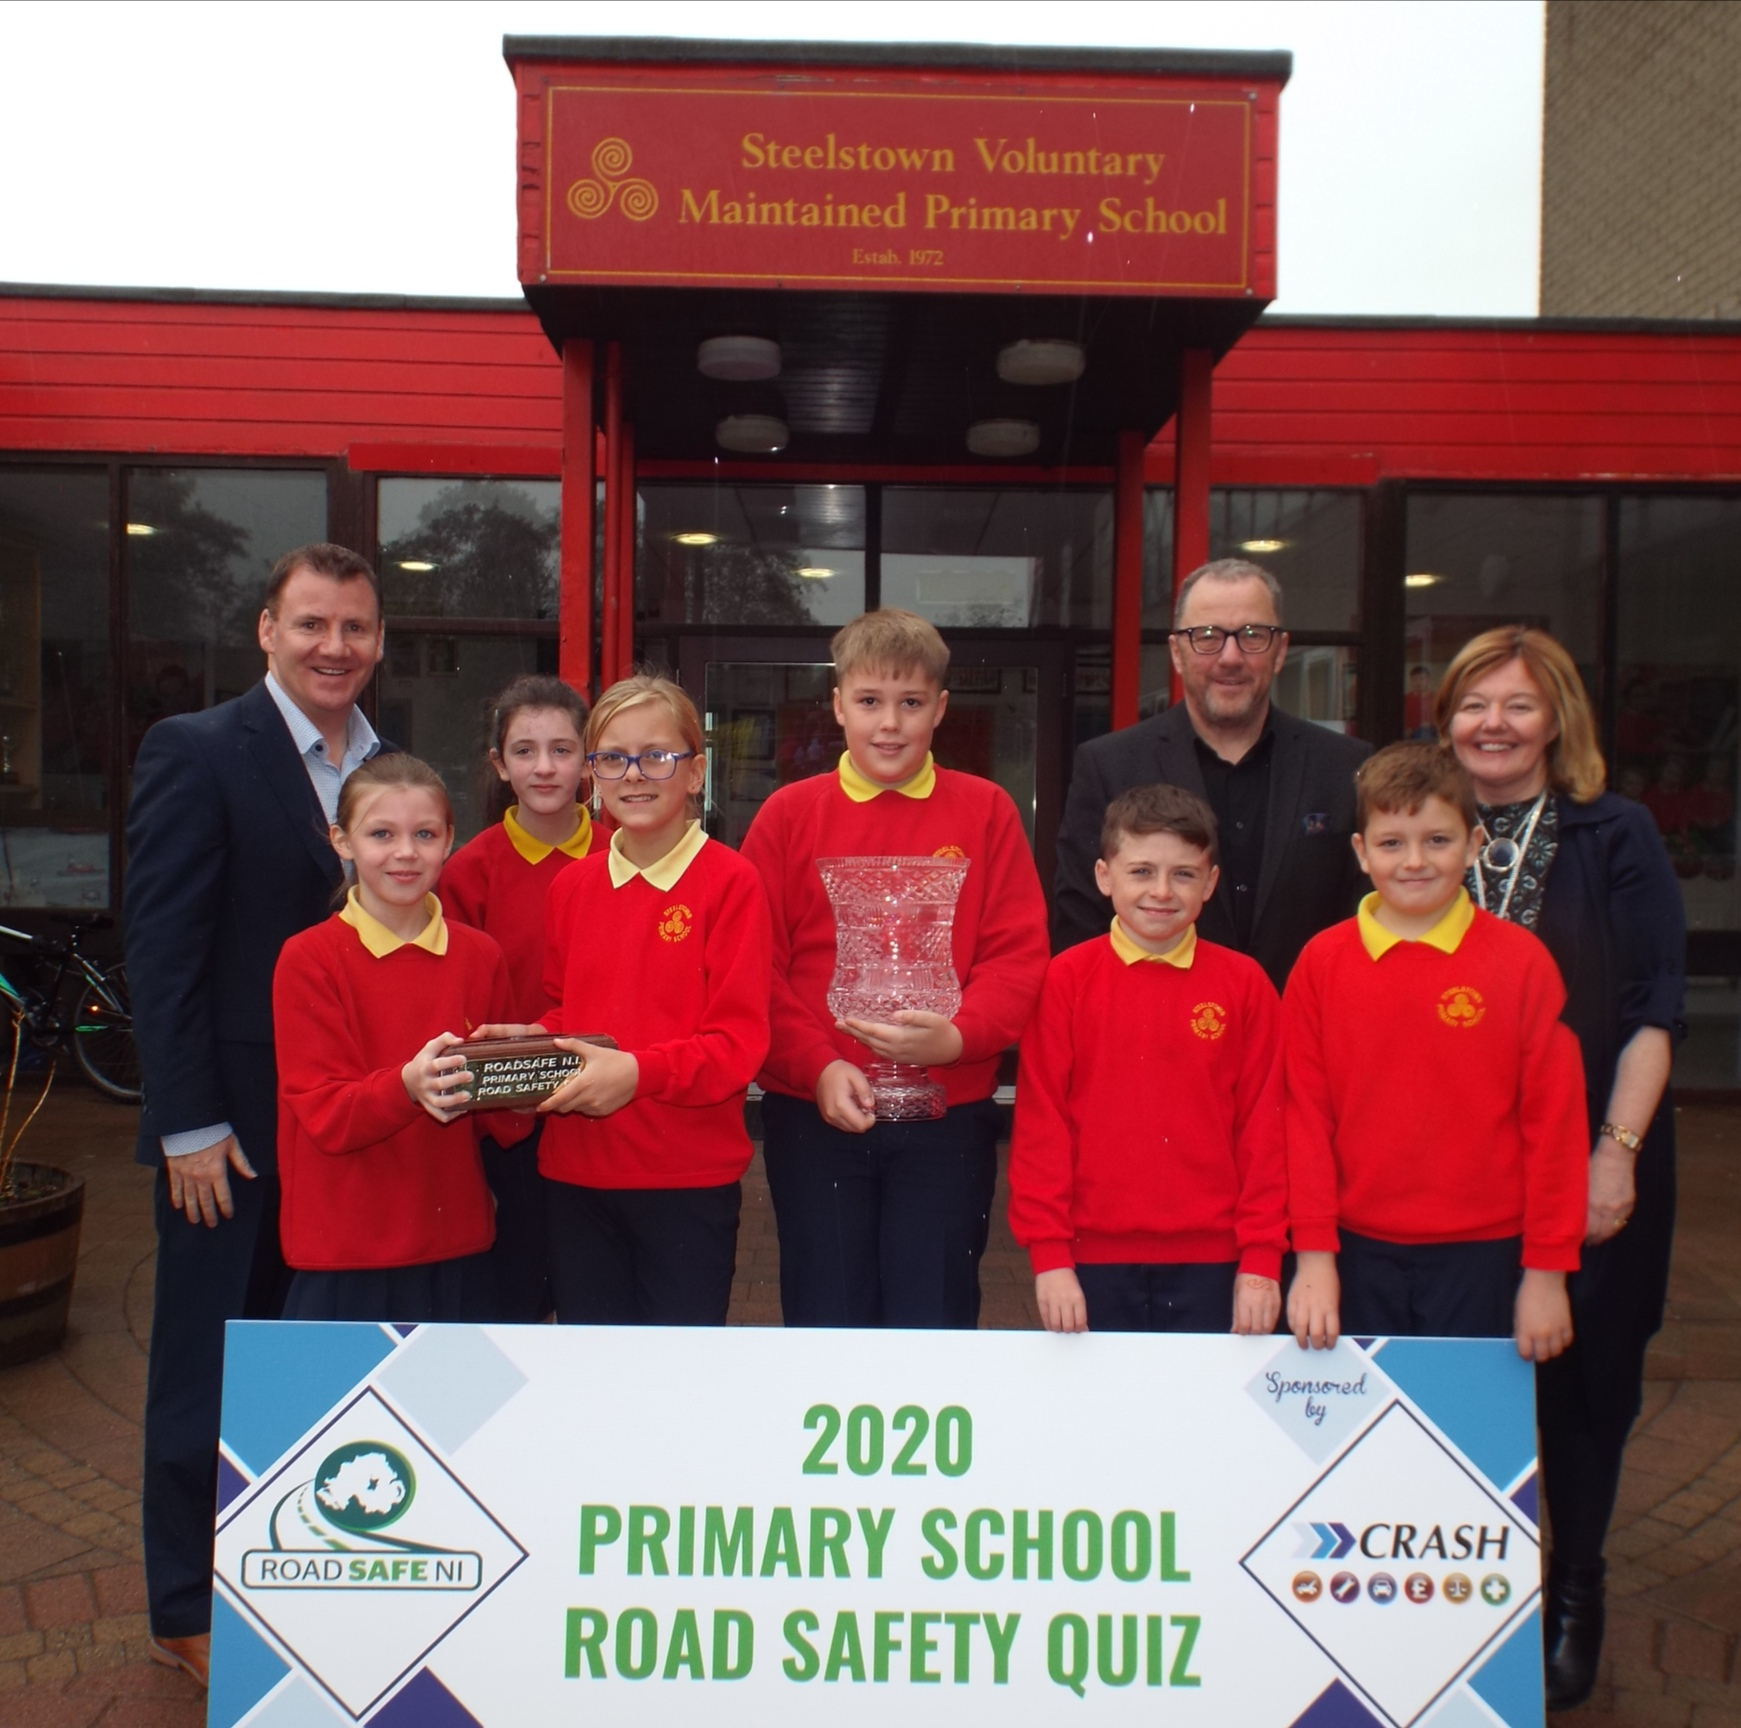 PRIMARY SCHOOL ROAD SAFETY QUIZ 2020 LAUNCHED